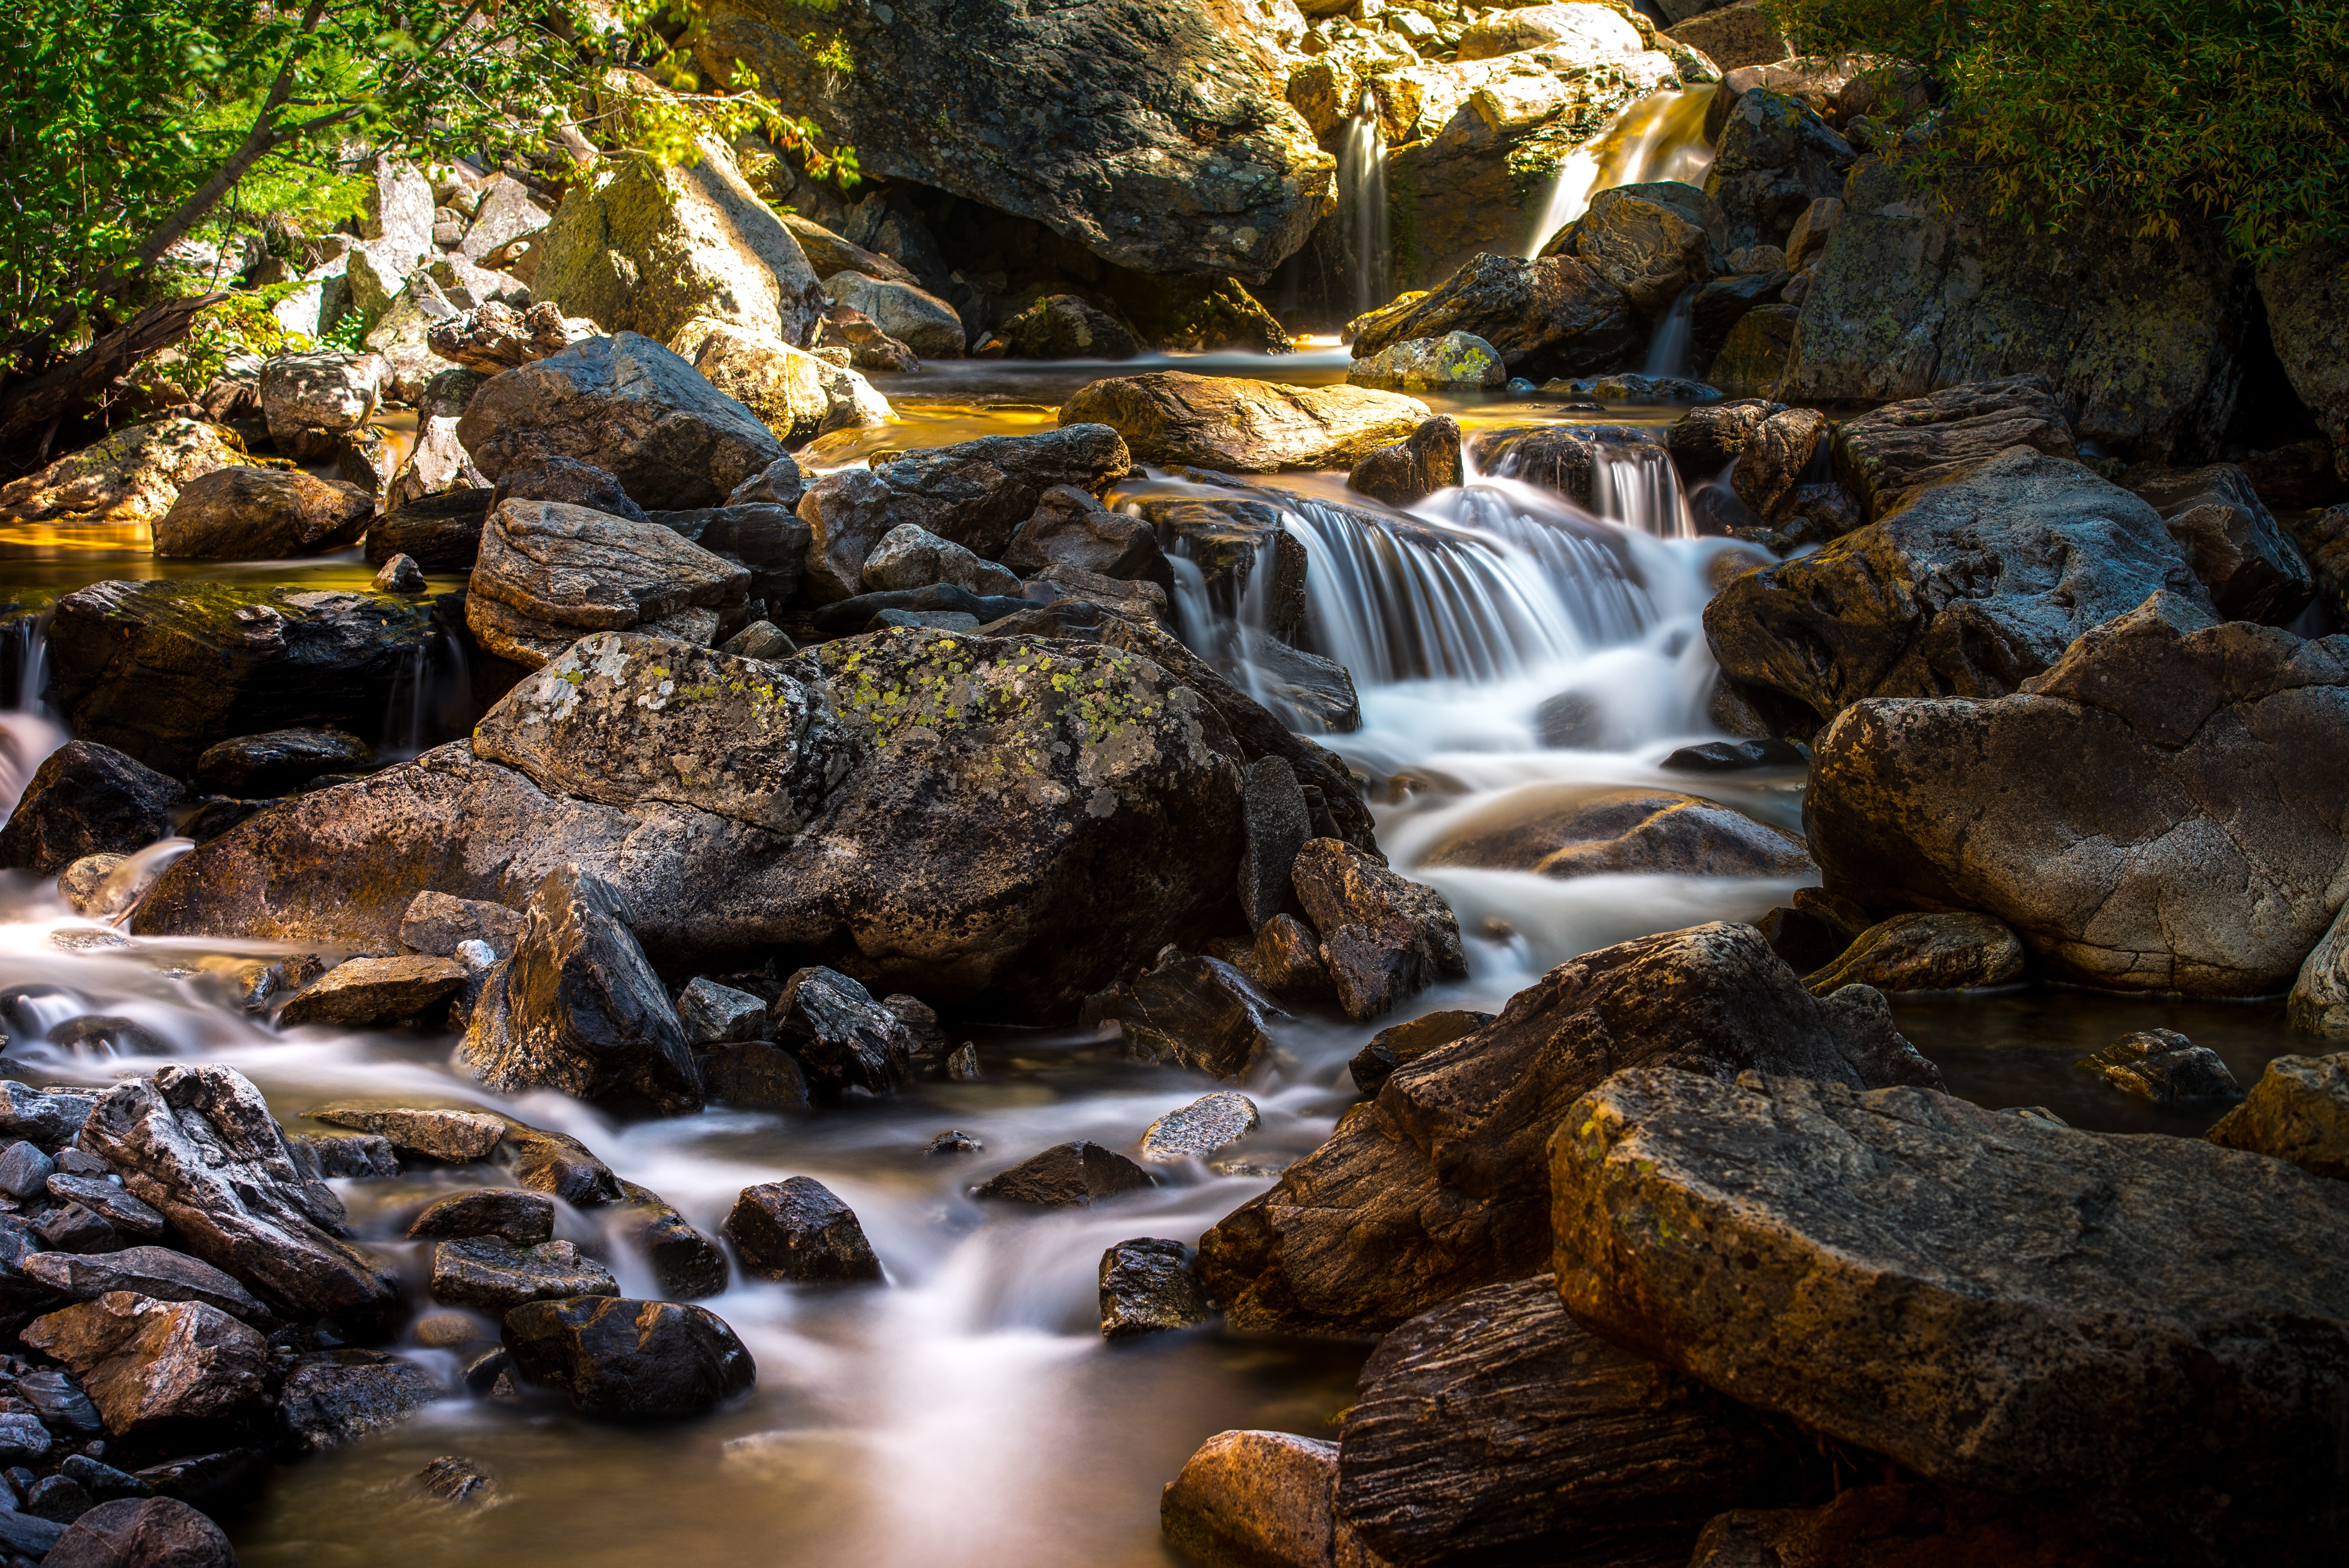 A stream flowing through rocks in a creek at the bottom of a stony mountain